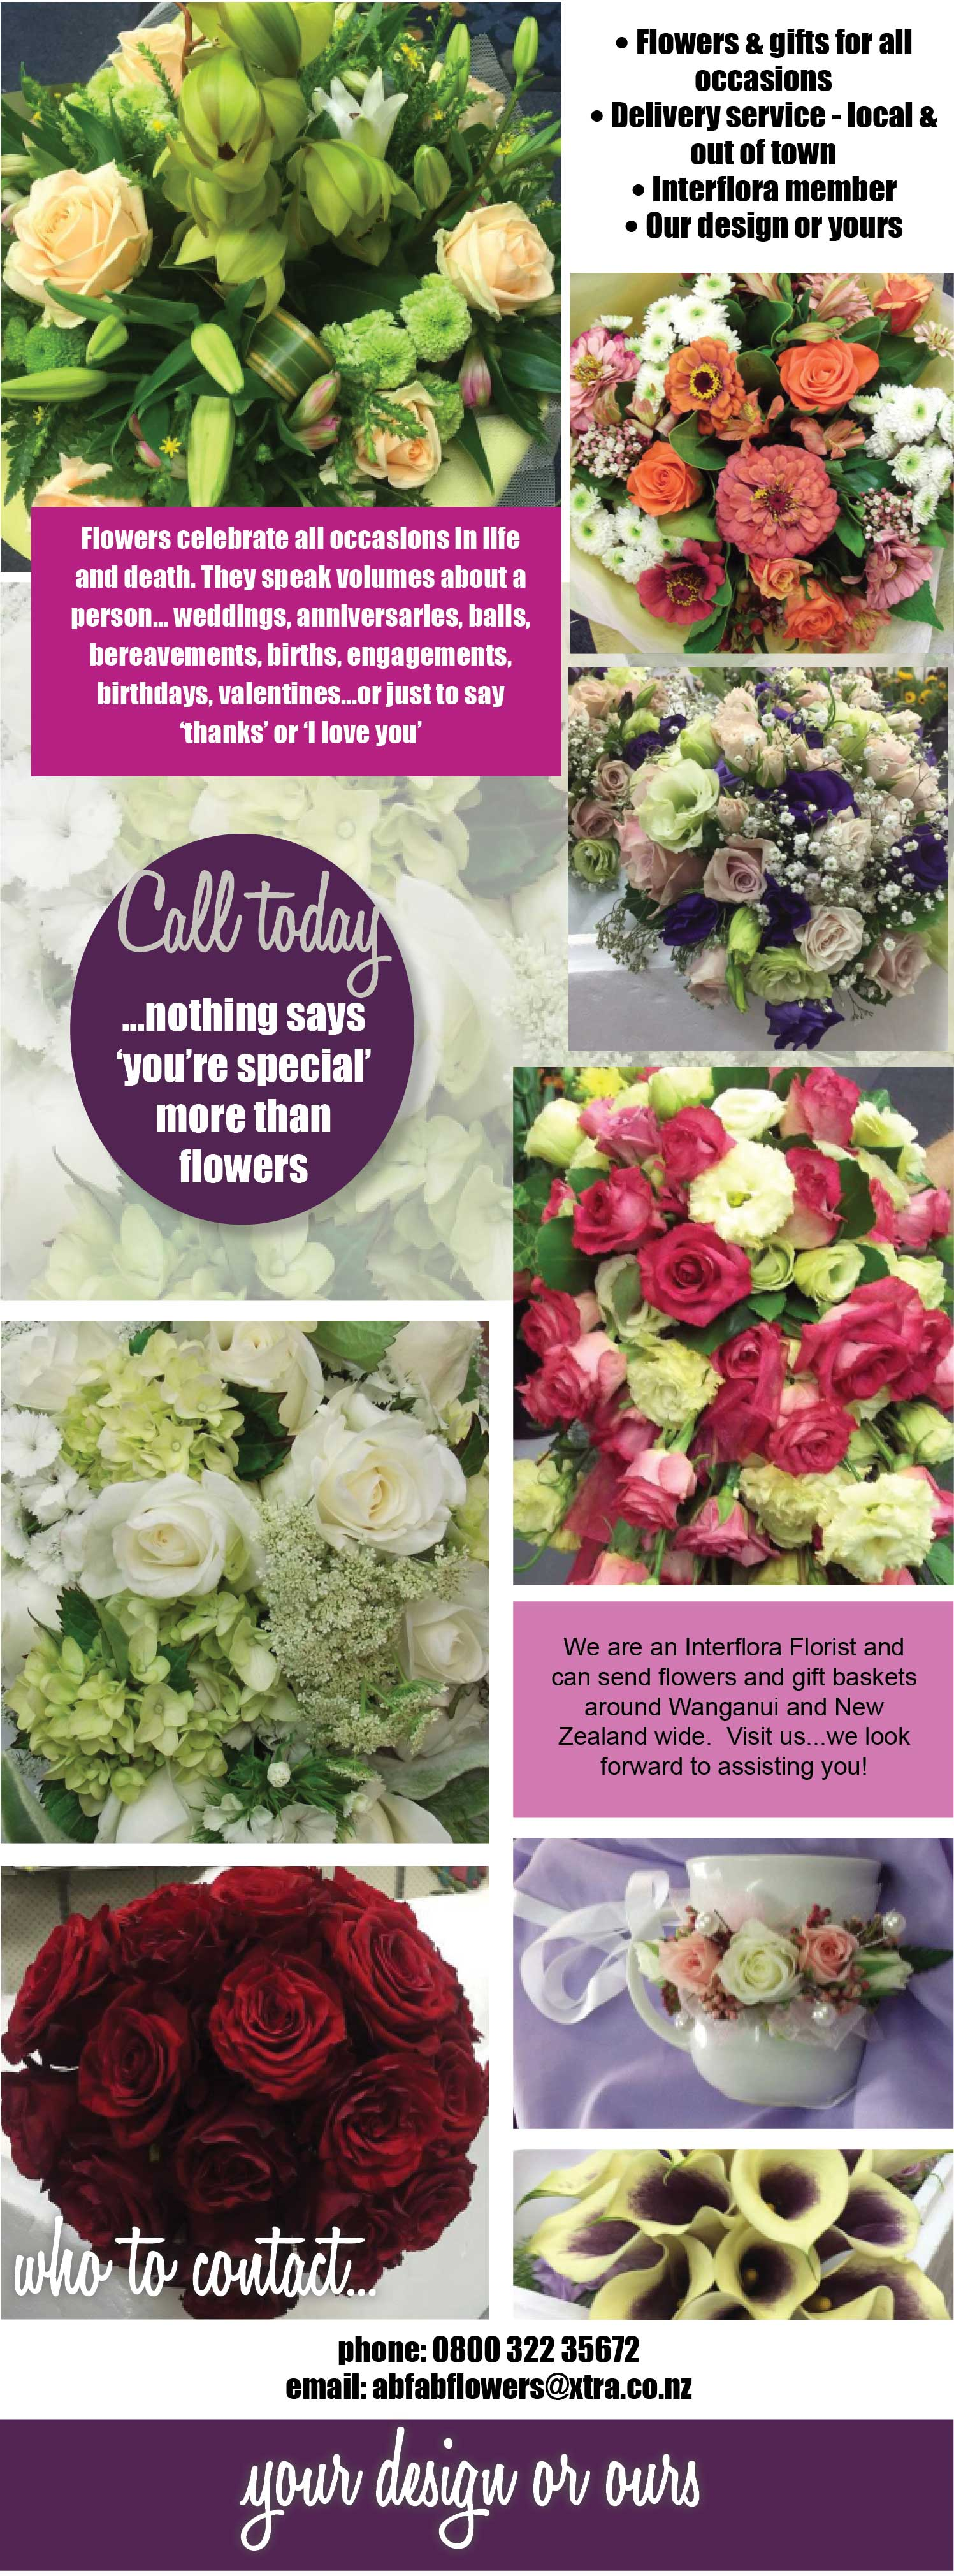 Based in Wanganui, Abfab Flowers boasts a highly talented and experienced team of Florists who have an absolute passion for creating beautifully designed flowers for your special occasion! Florist. Florists. Wanganui Florist. Interflora